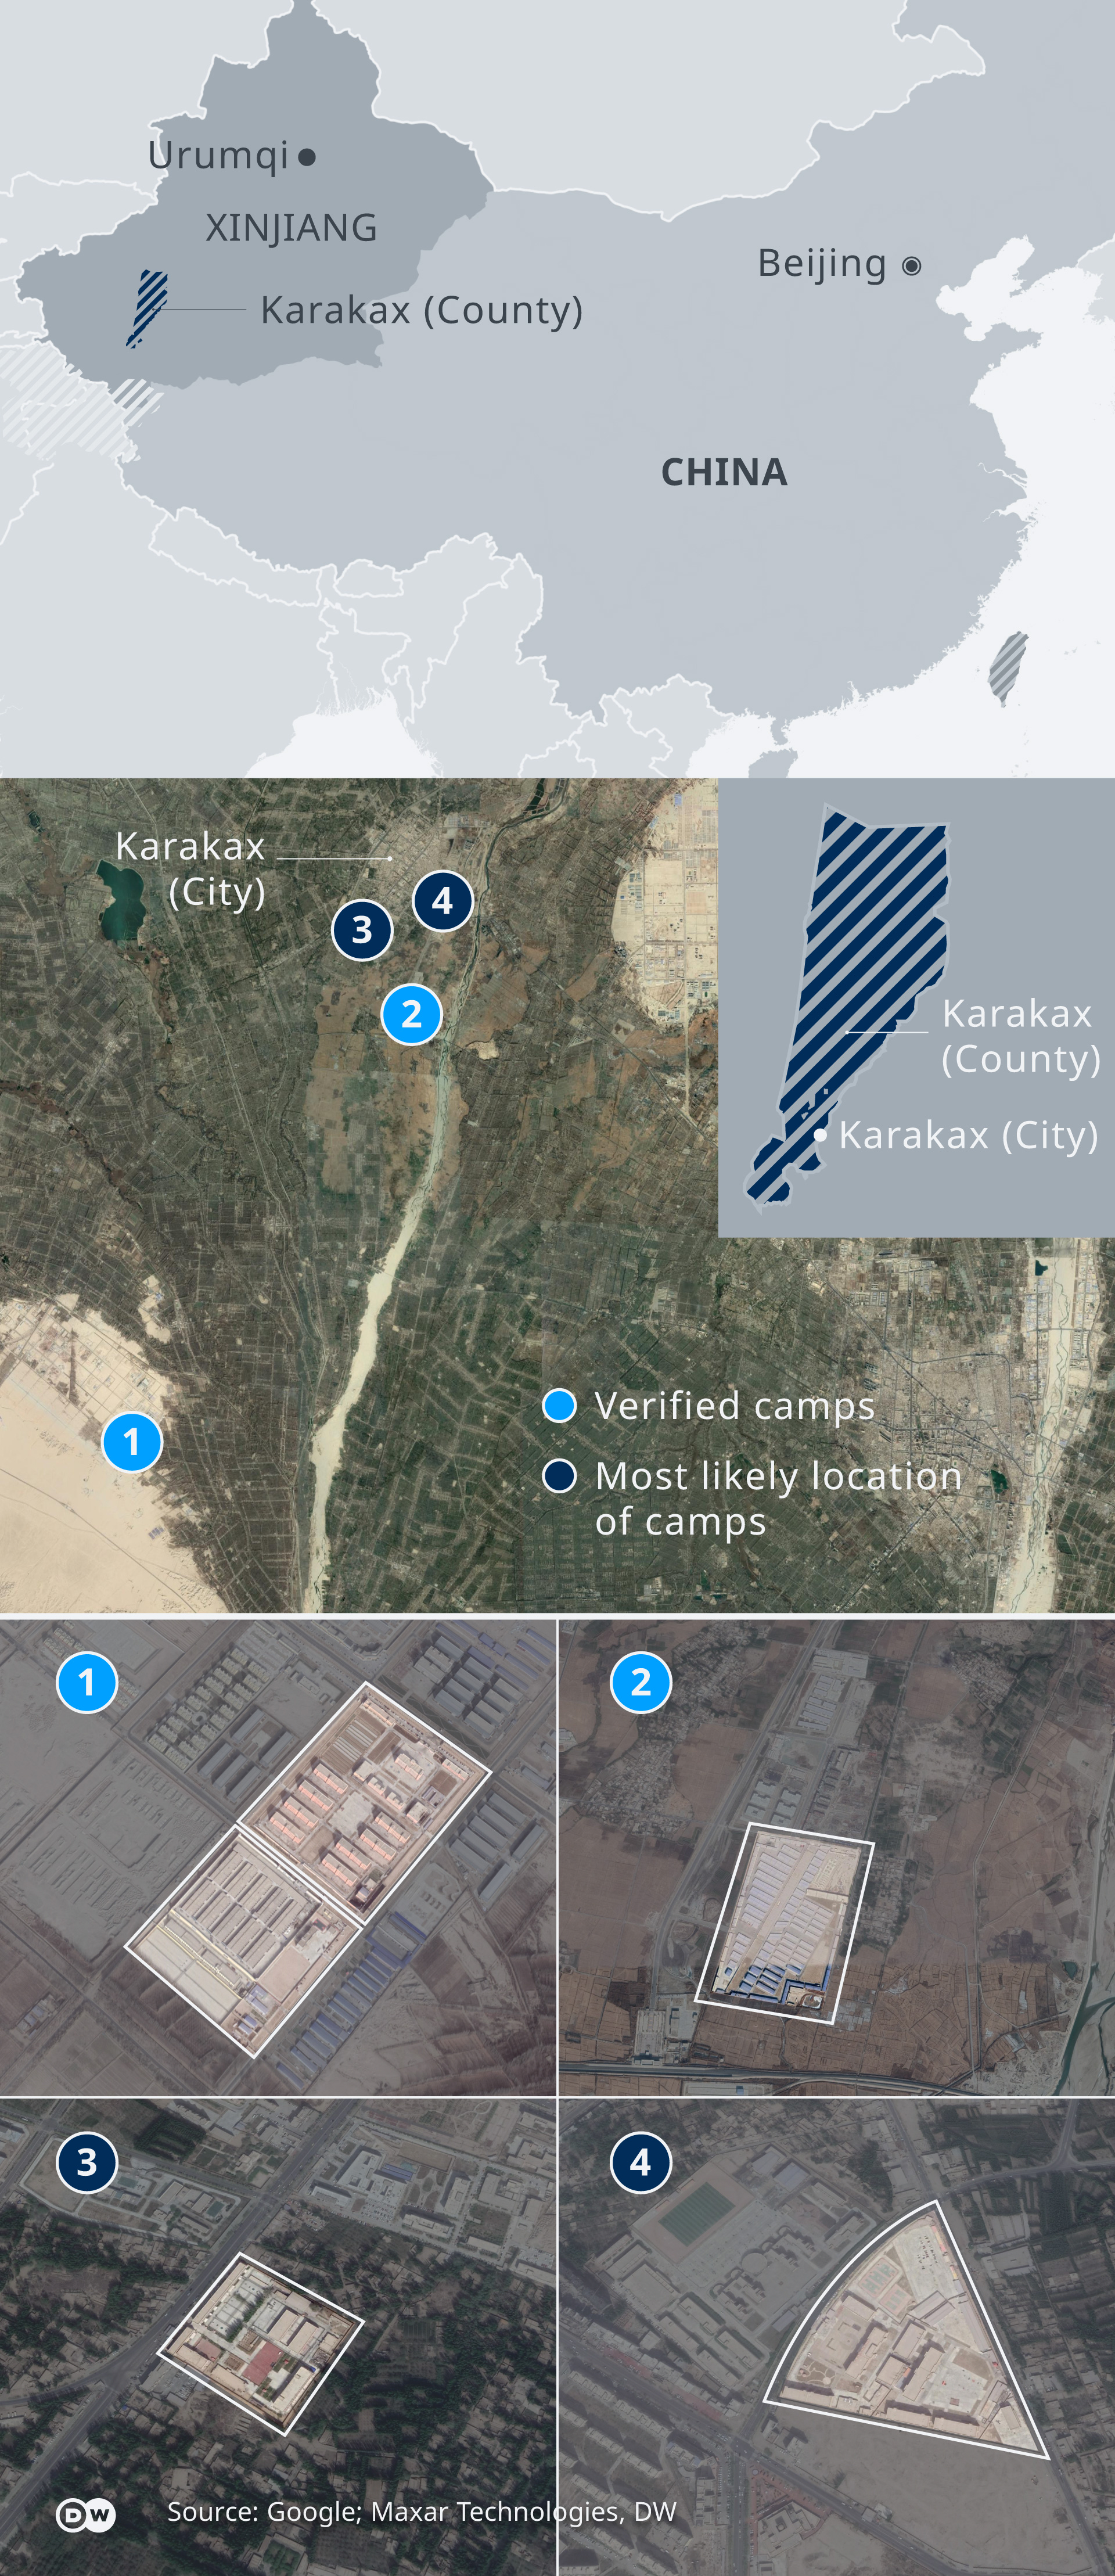 A map of Karakax County and satellite images of Chinese 're-education' camps